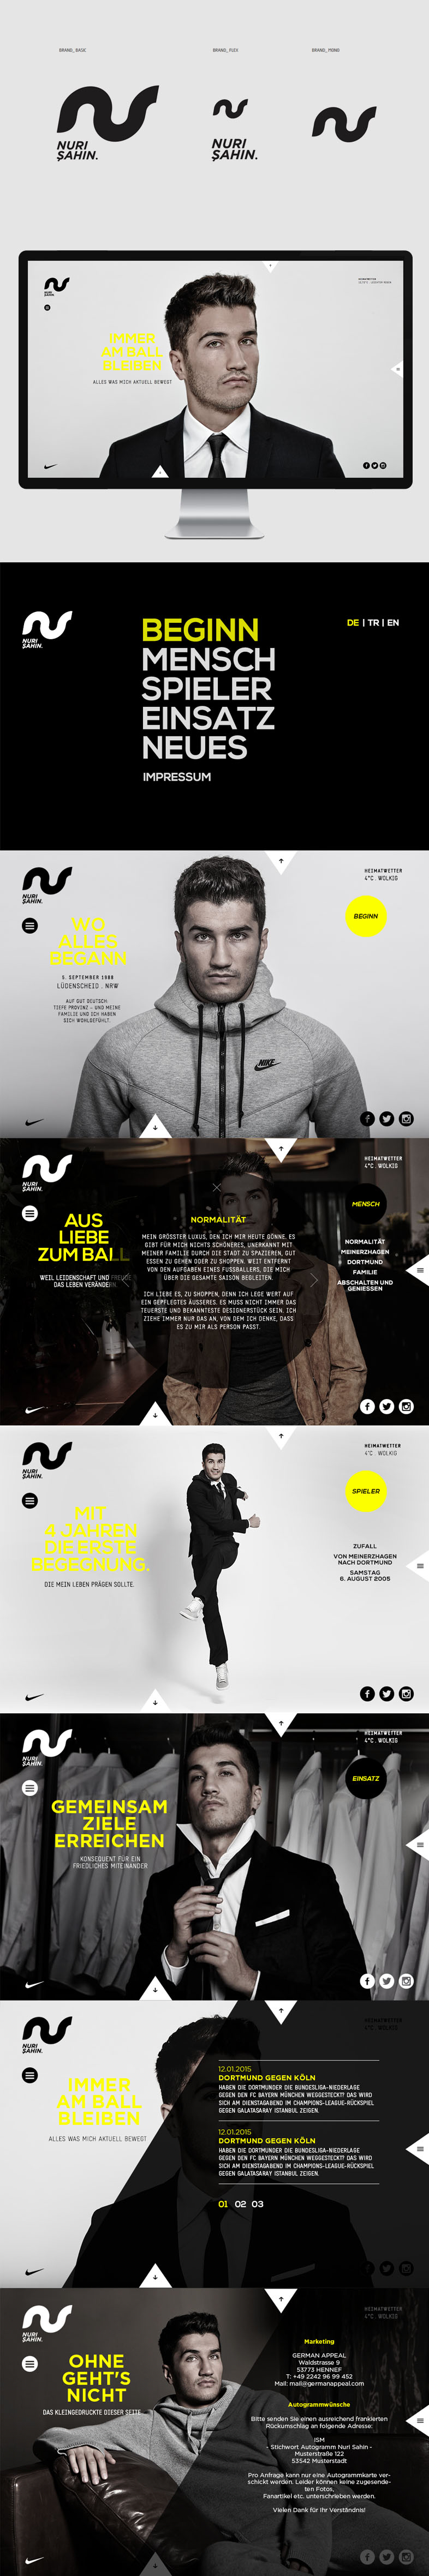 9FF - Corporate Design / Typedesign